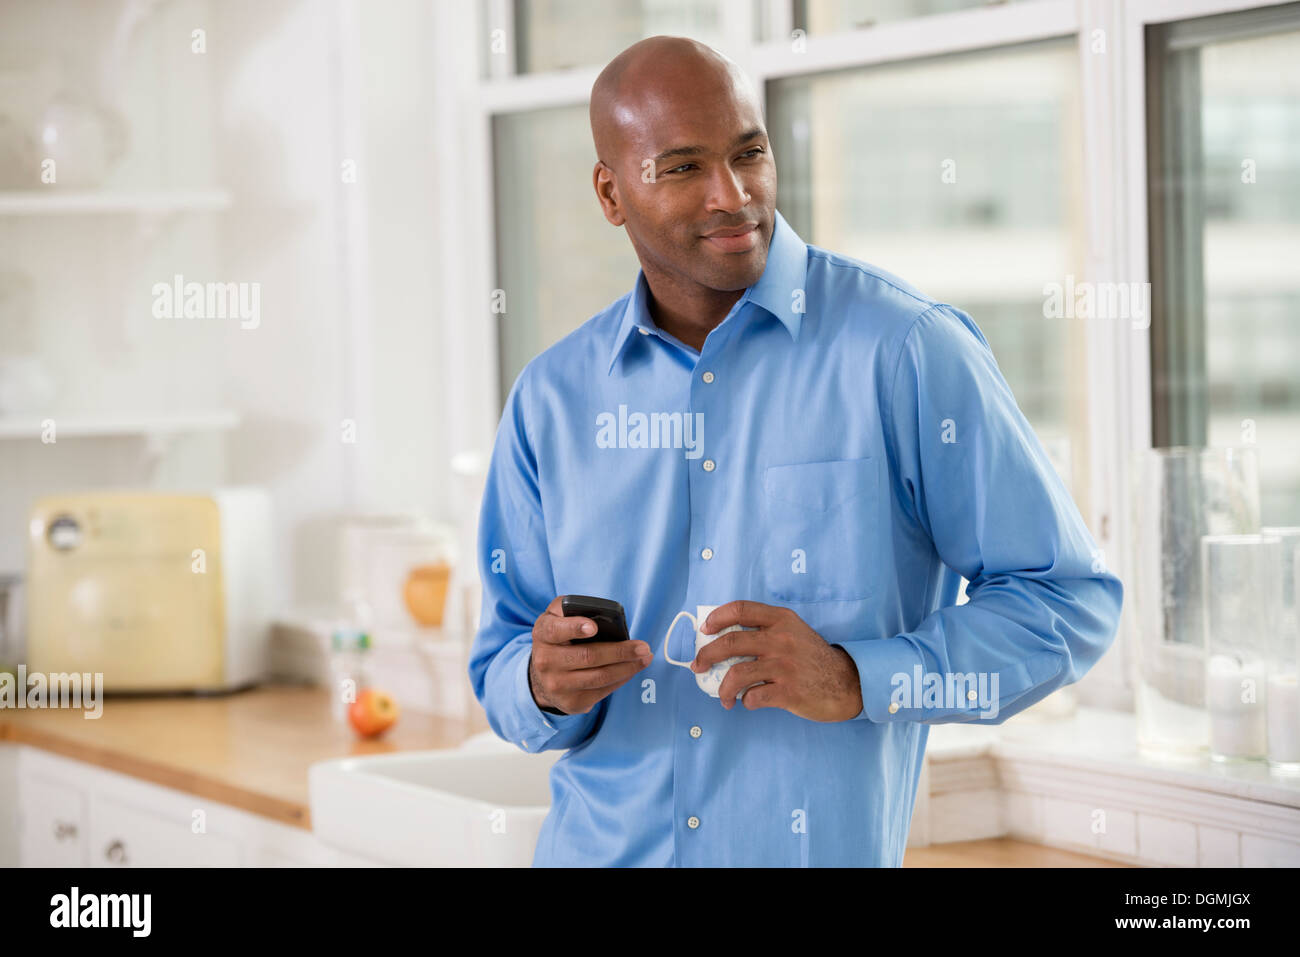 Business people. A man in a blue shirt, with a smart phone in his hand. - Stock Image